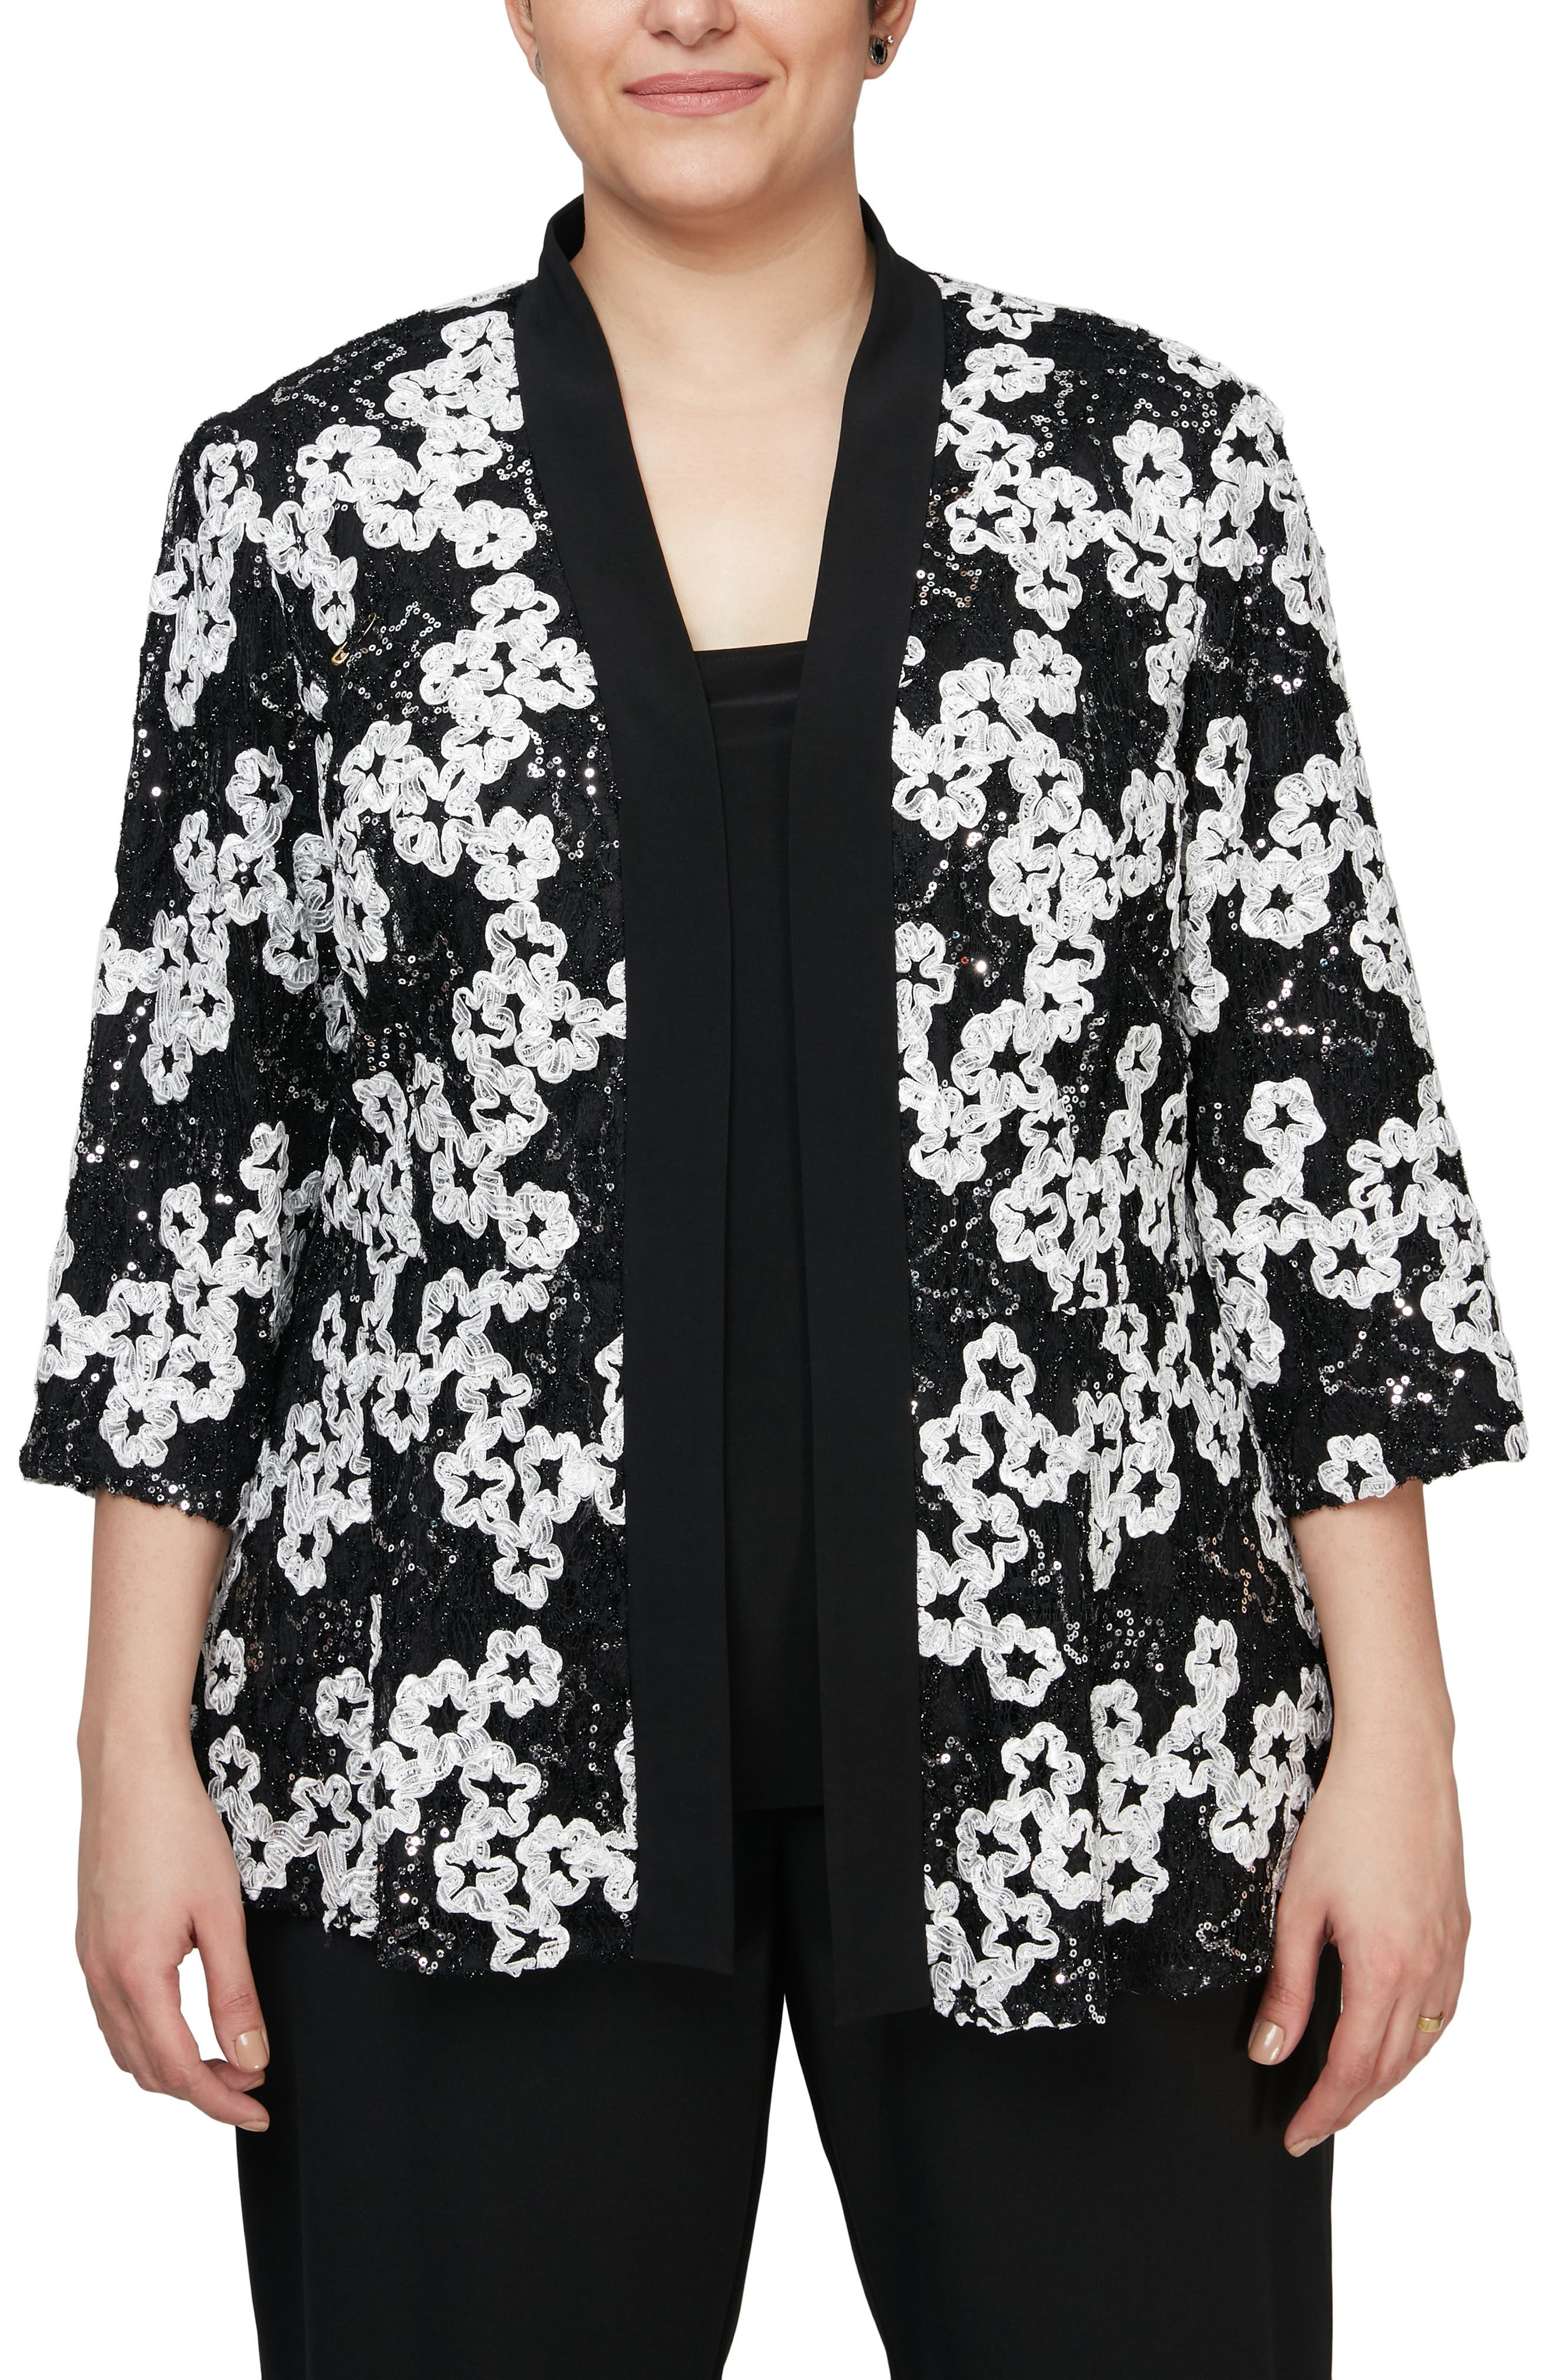 Pairing a scoop-neck tank with a three-quarter-sleeve jacket adorned by sequins and ribbons of blooms, this duo is an elegant way to layer at your next event. Style Name: Alex Evenings Floral & Sequin Applique Jacket & Tank Set (Plus Size). Style Number: 6102726. Available in stores.